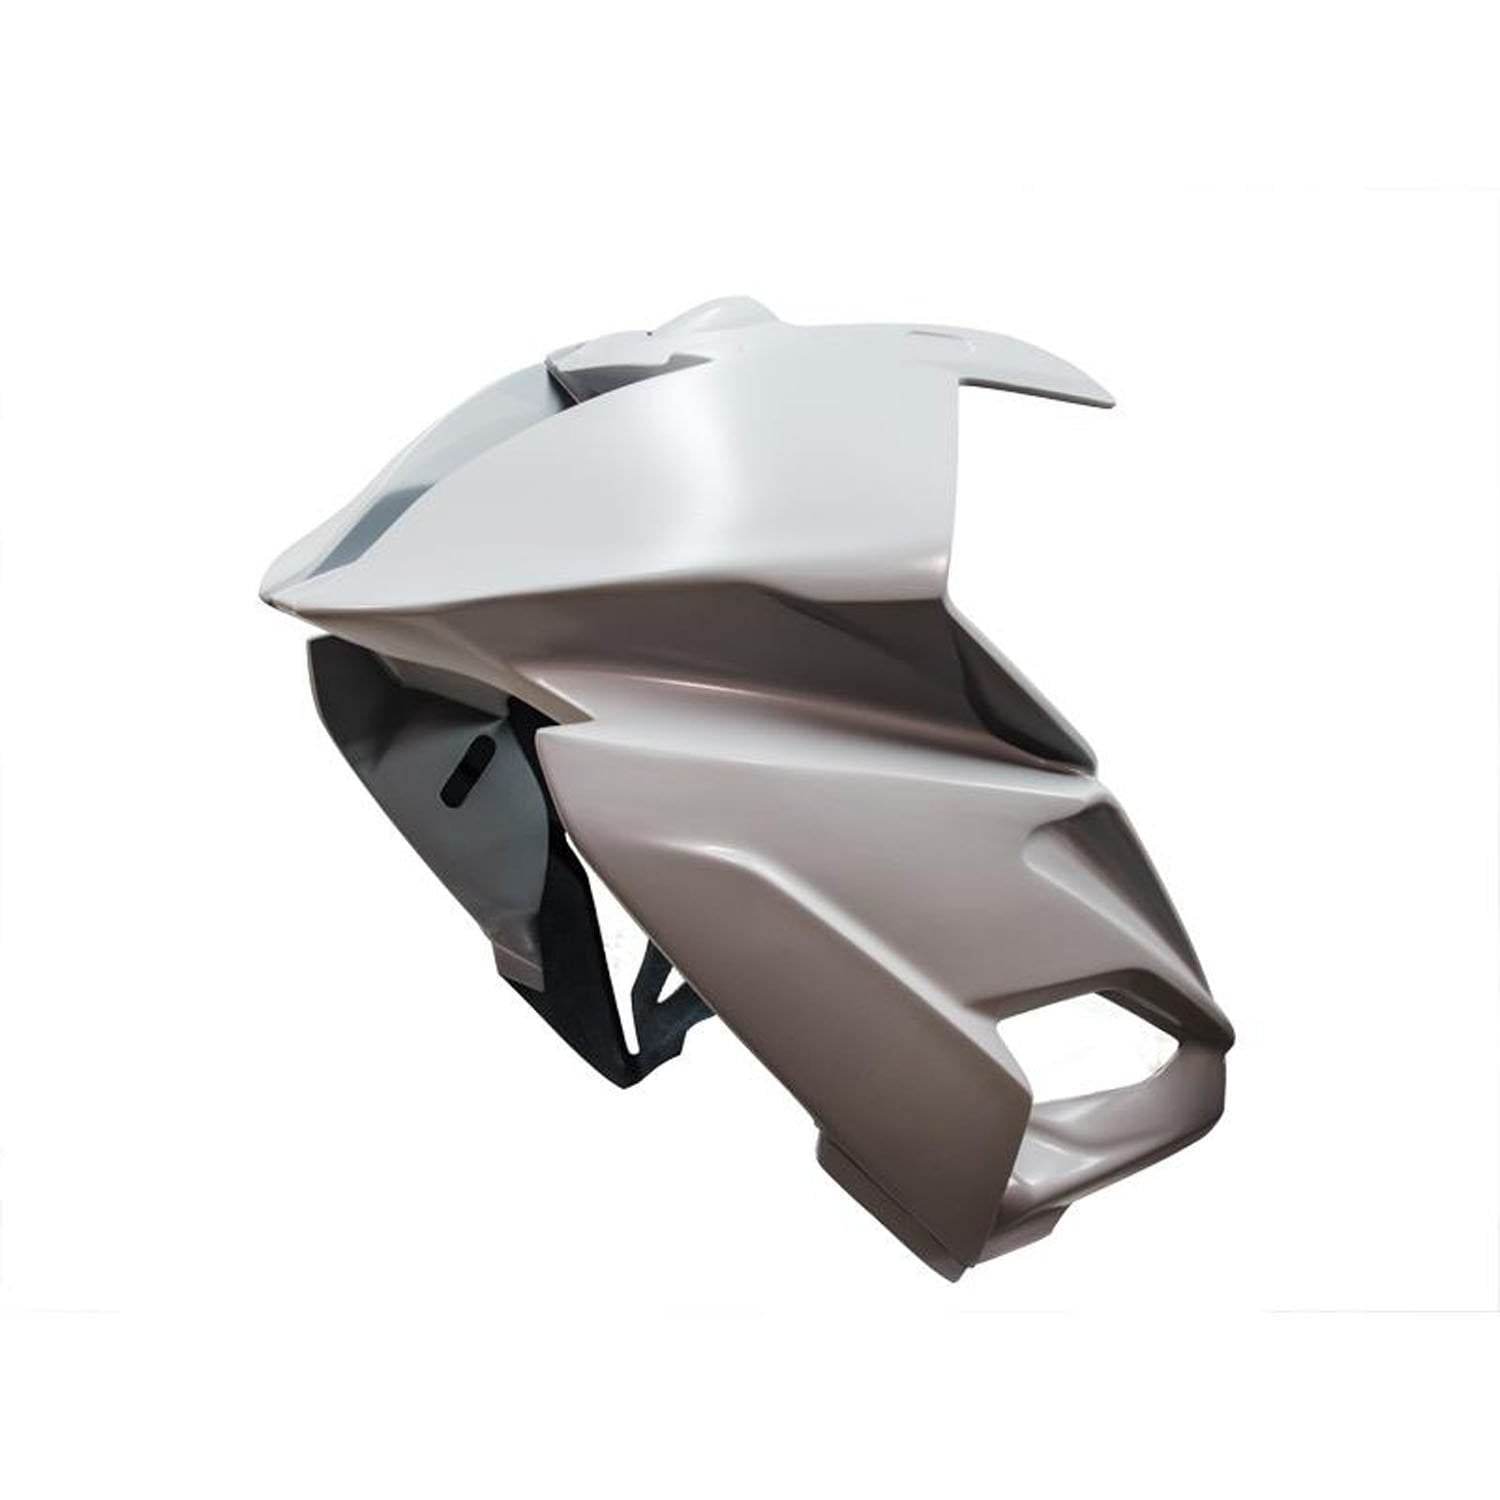 BMW S1000RR '15-17 Upper Fairing-Pro Series - Woodcraft Technologies - Motorcycle Parts